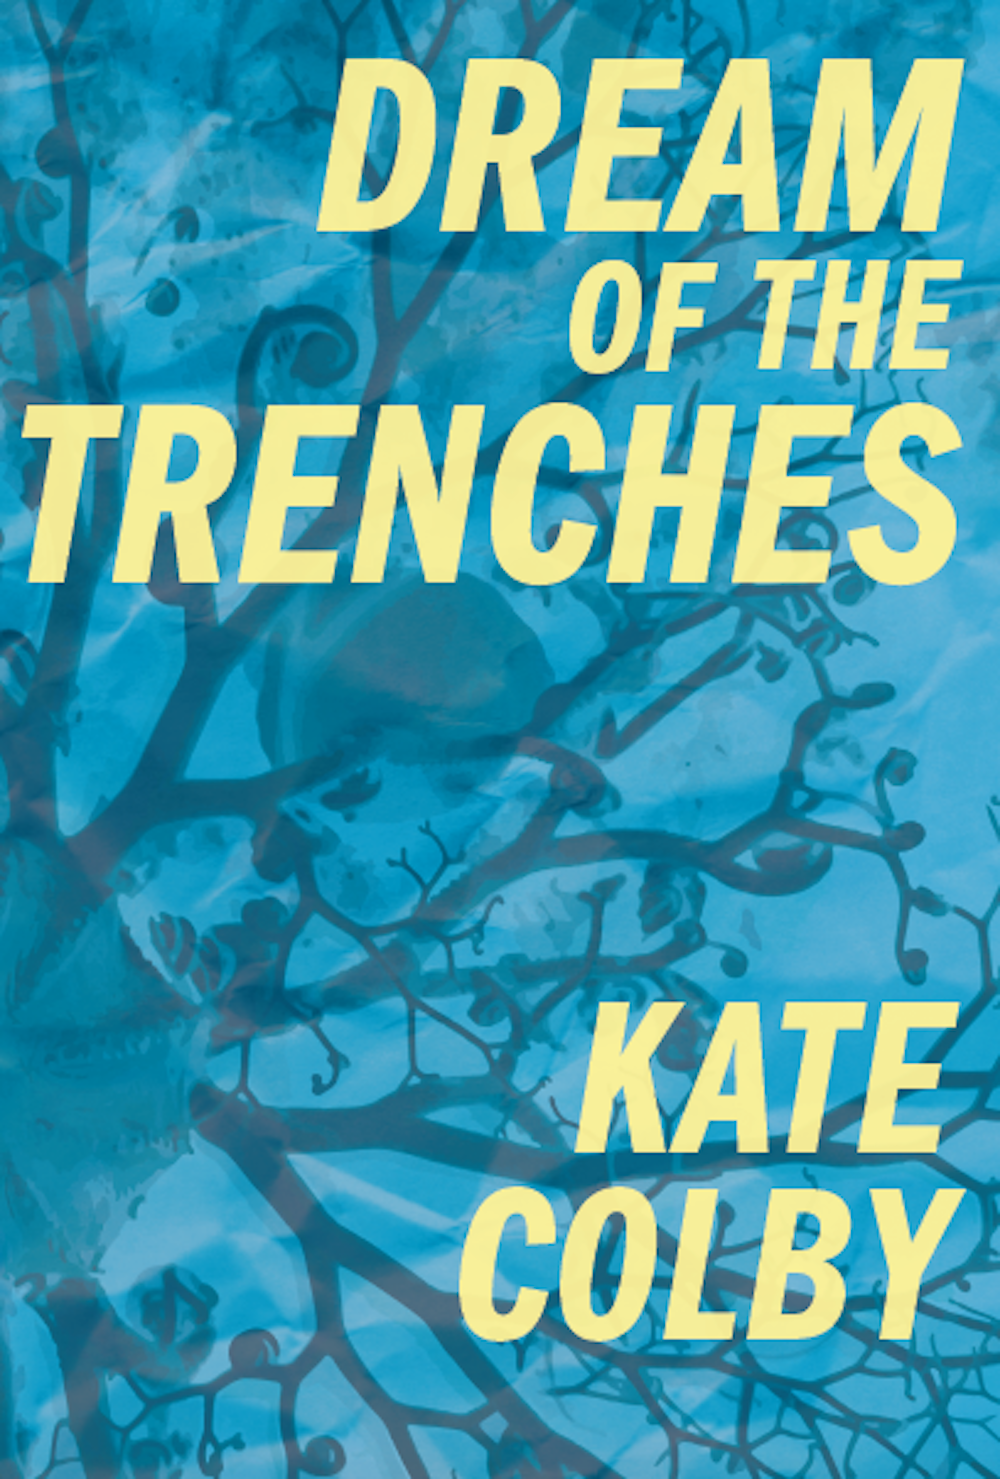 Dream of the Trenches by Kate Colby